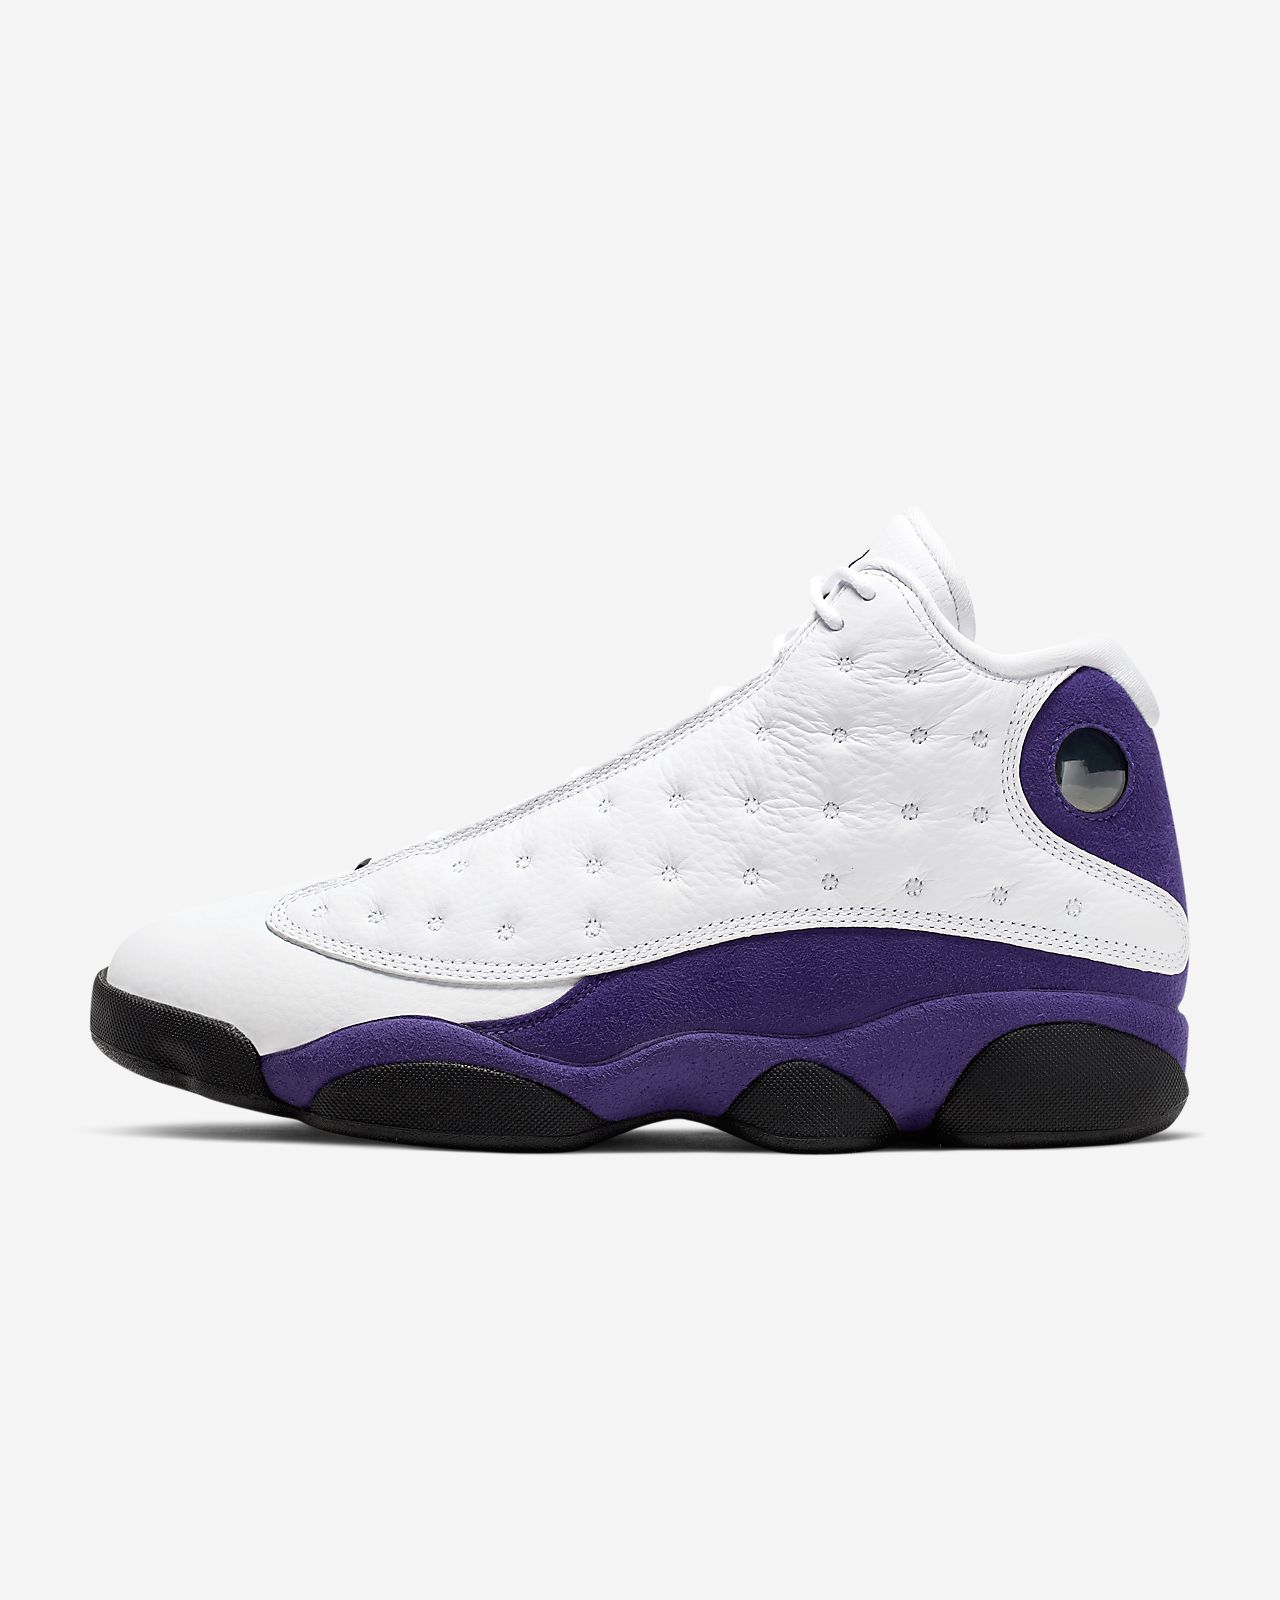 quality design 11ea2 9cea3 Air Jordan 13 Retro Men's Shoe